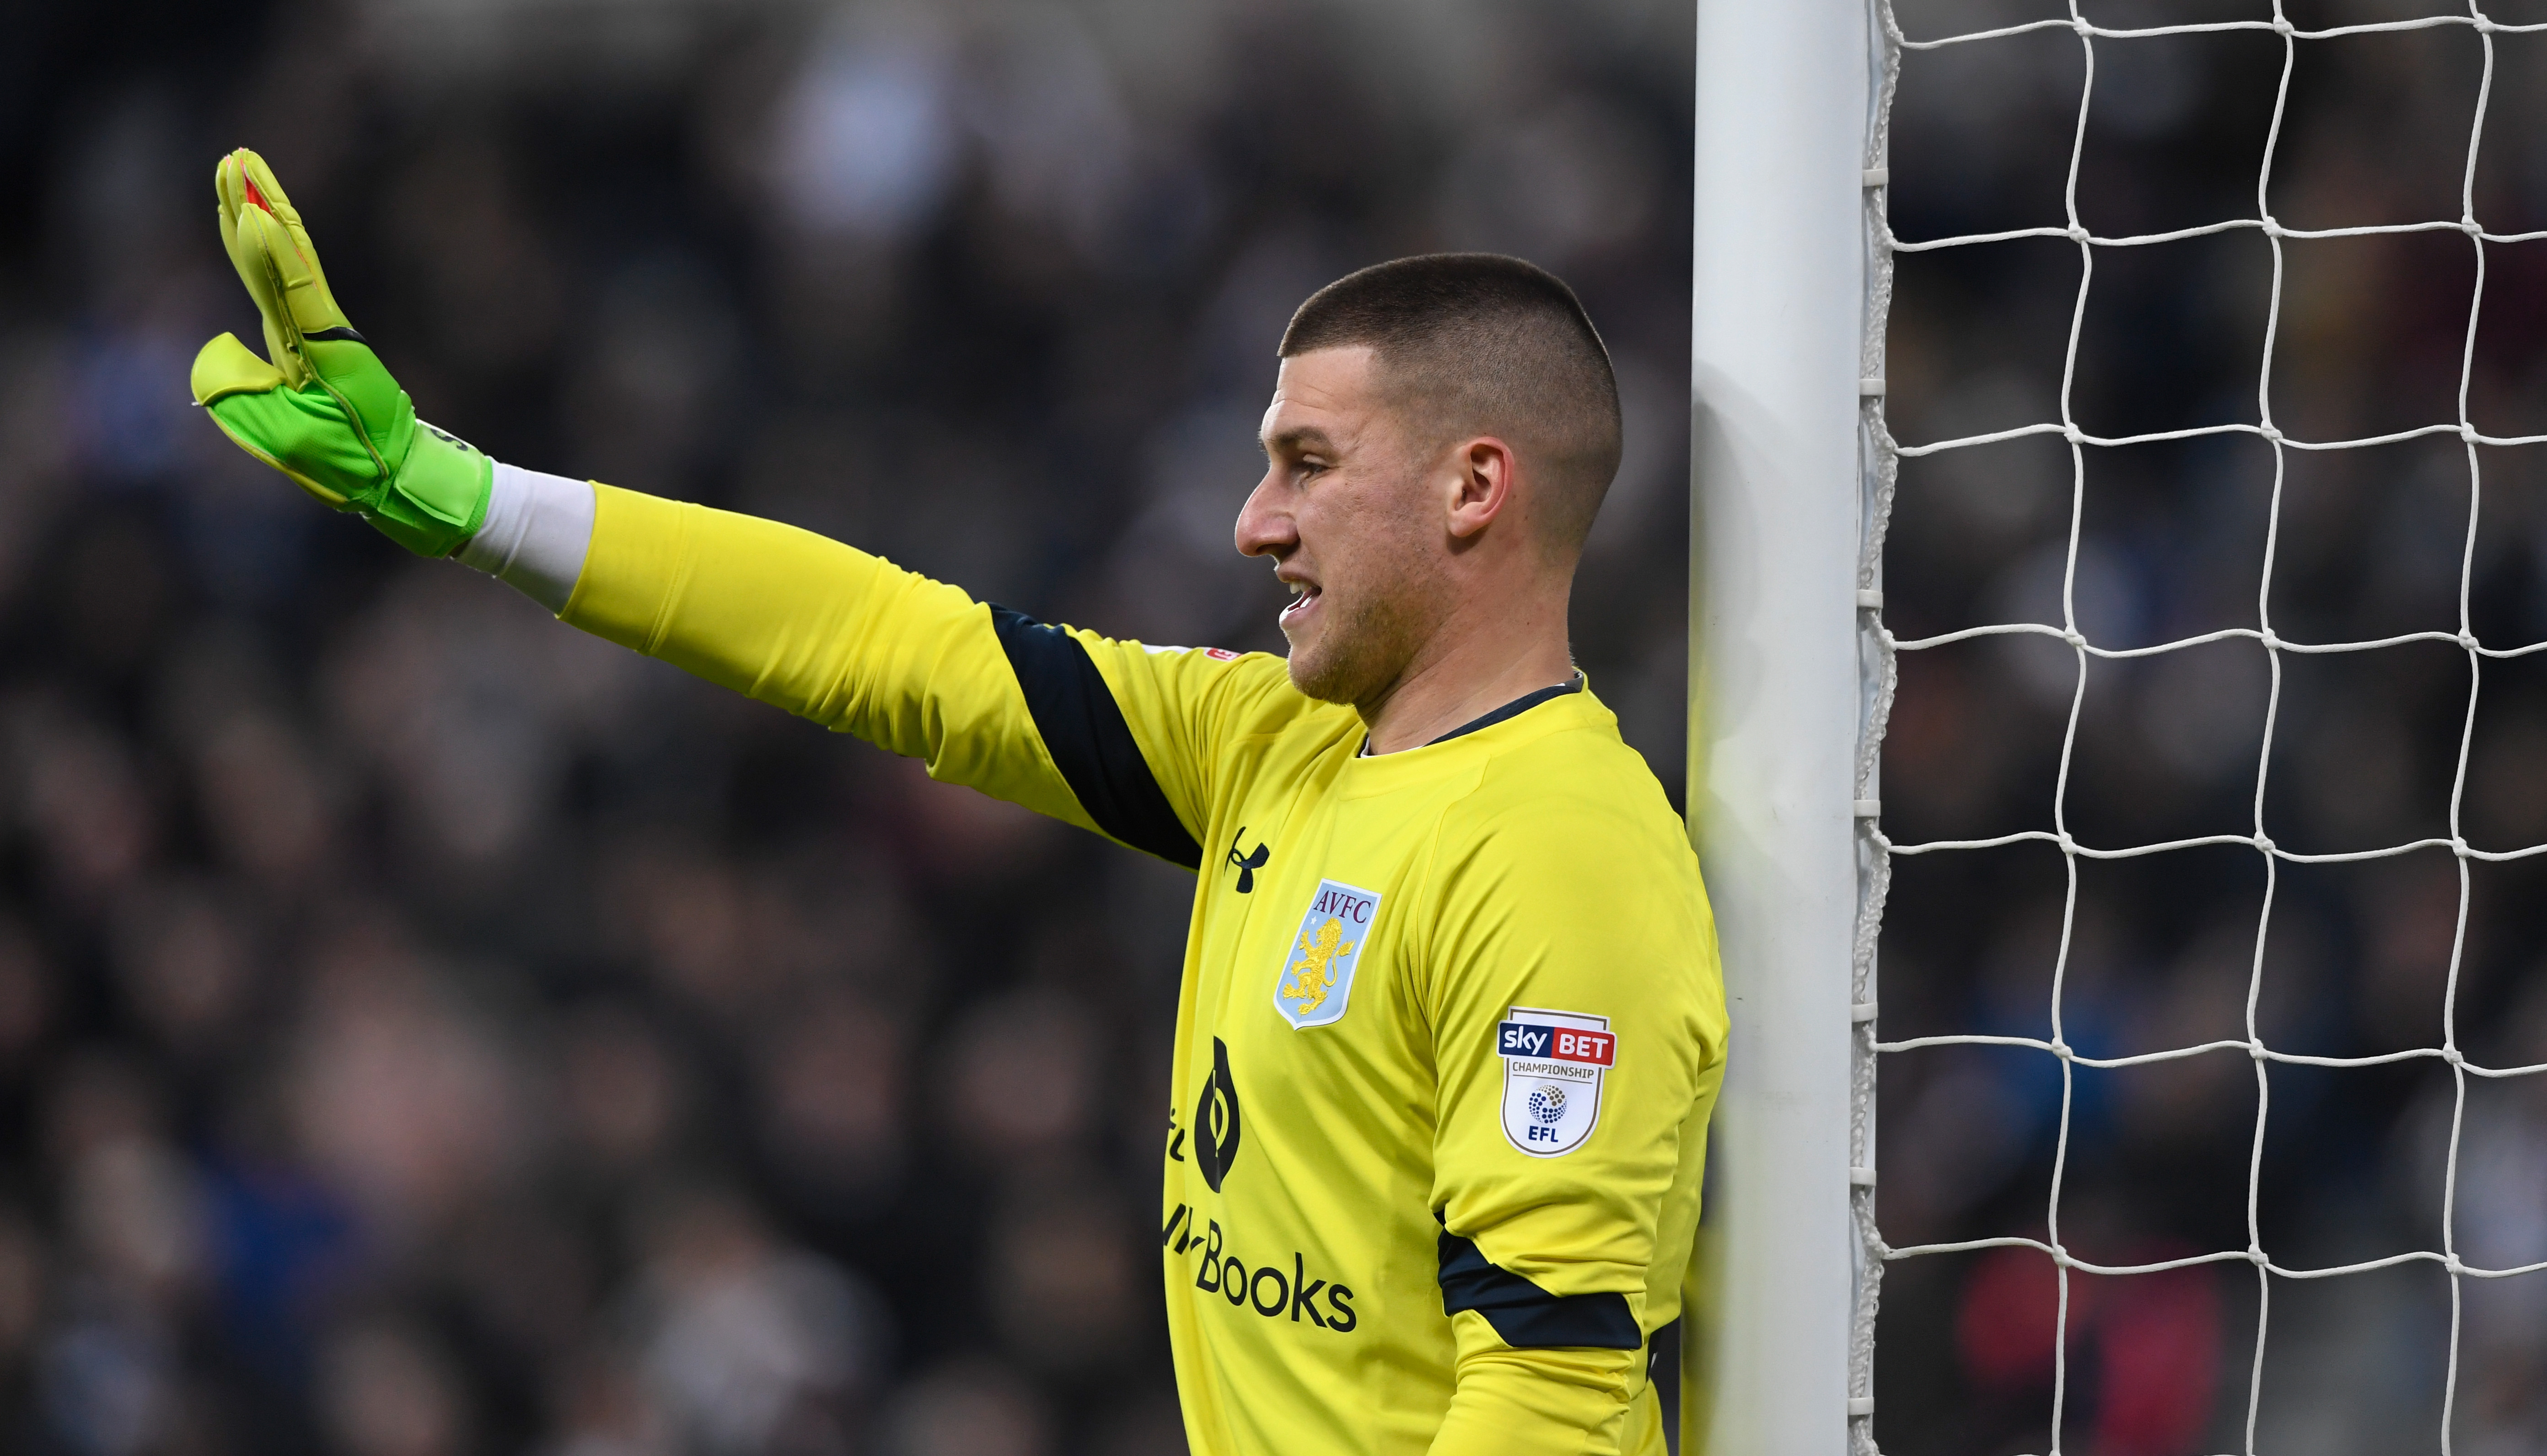 NEWCASTLE UPON TYNE, ENGLAND - FEBRUARY 20: Villa keeper Sam Johnstone in action during the Sky Bet Championship match between Newcastle United and Aston Villa at St James' Park on February 20, 2017 in Newcastle upon Tyne, England. (Photo by Stu Forster/Getty Images)